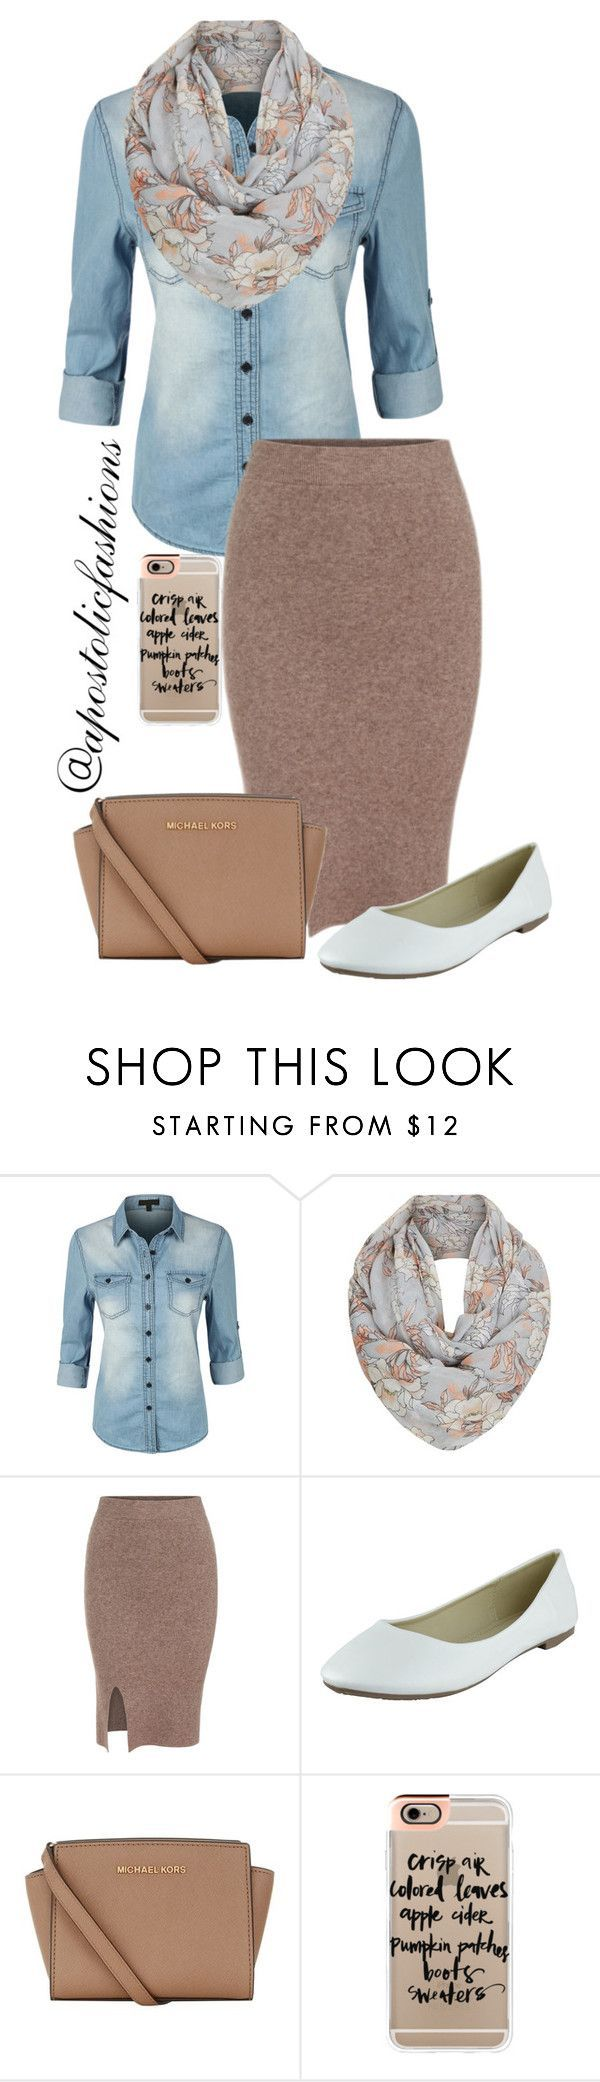 """""""Apostolic Fashions #902"""" by apostolicfashions on Polyvore featuring LE3NO, MICHAEL Michael Kors and Casetify"""